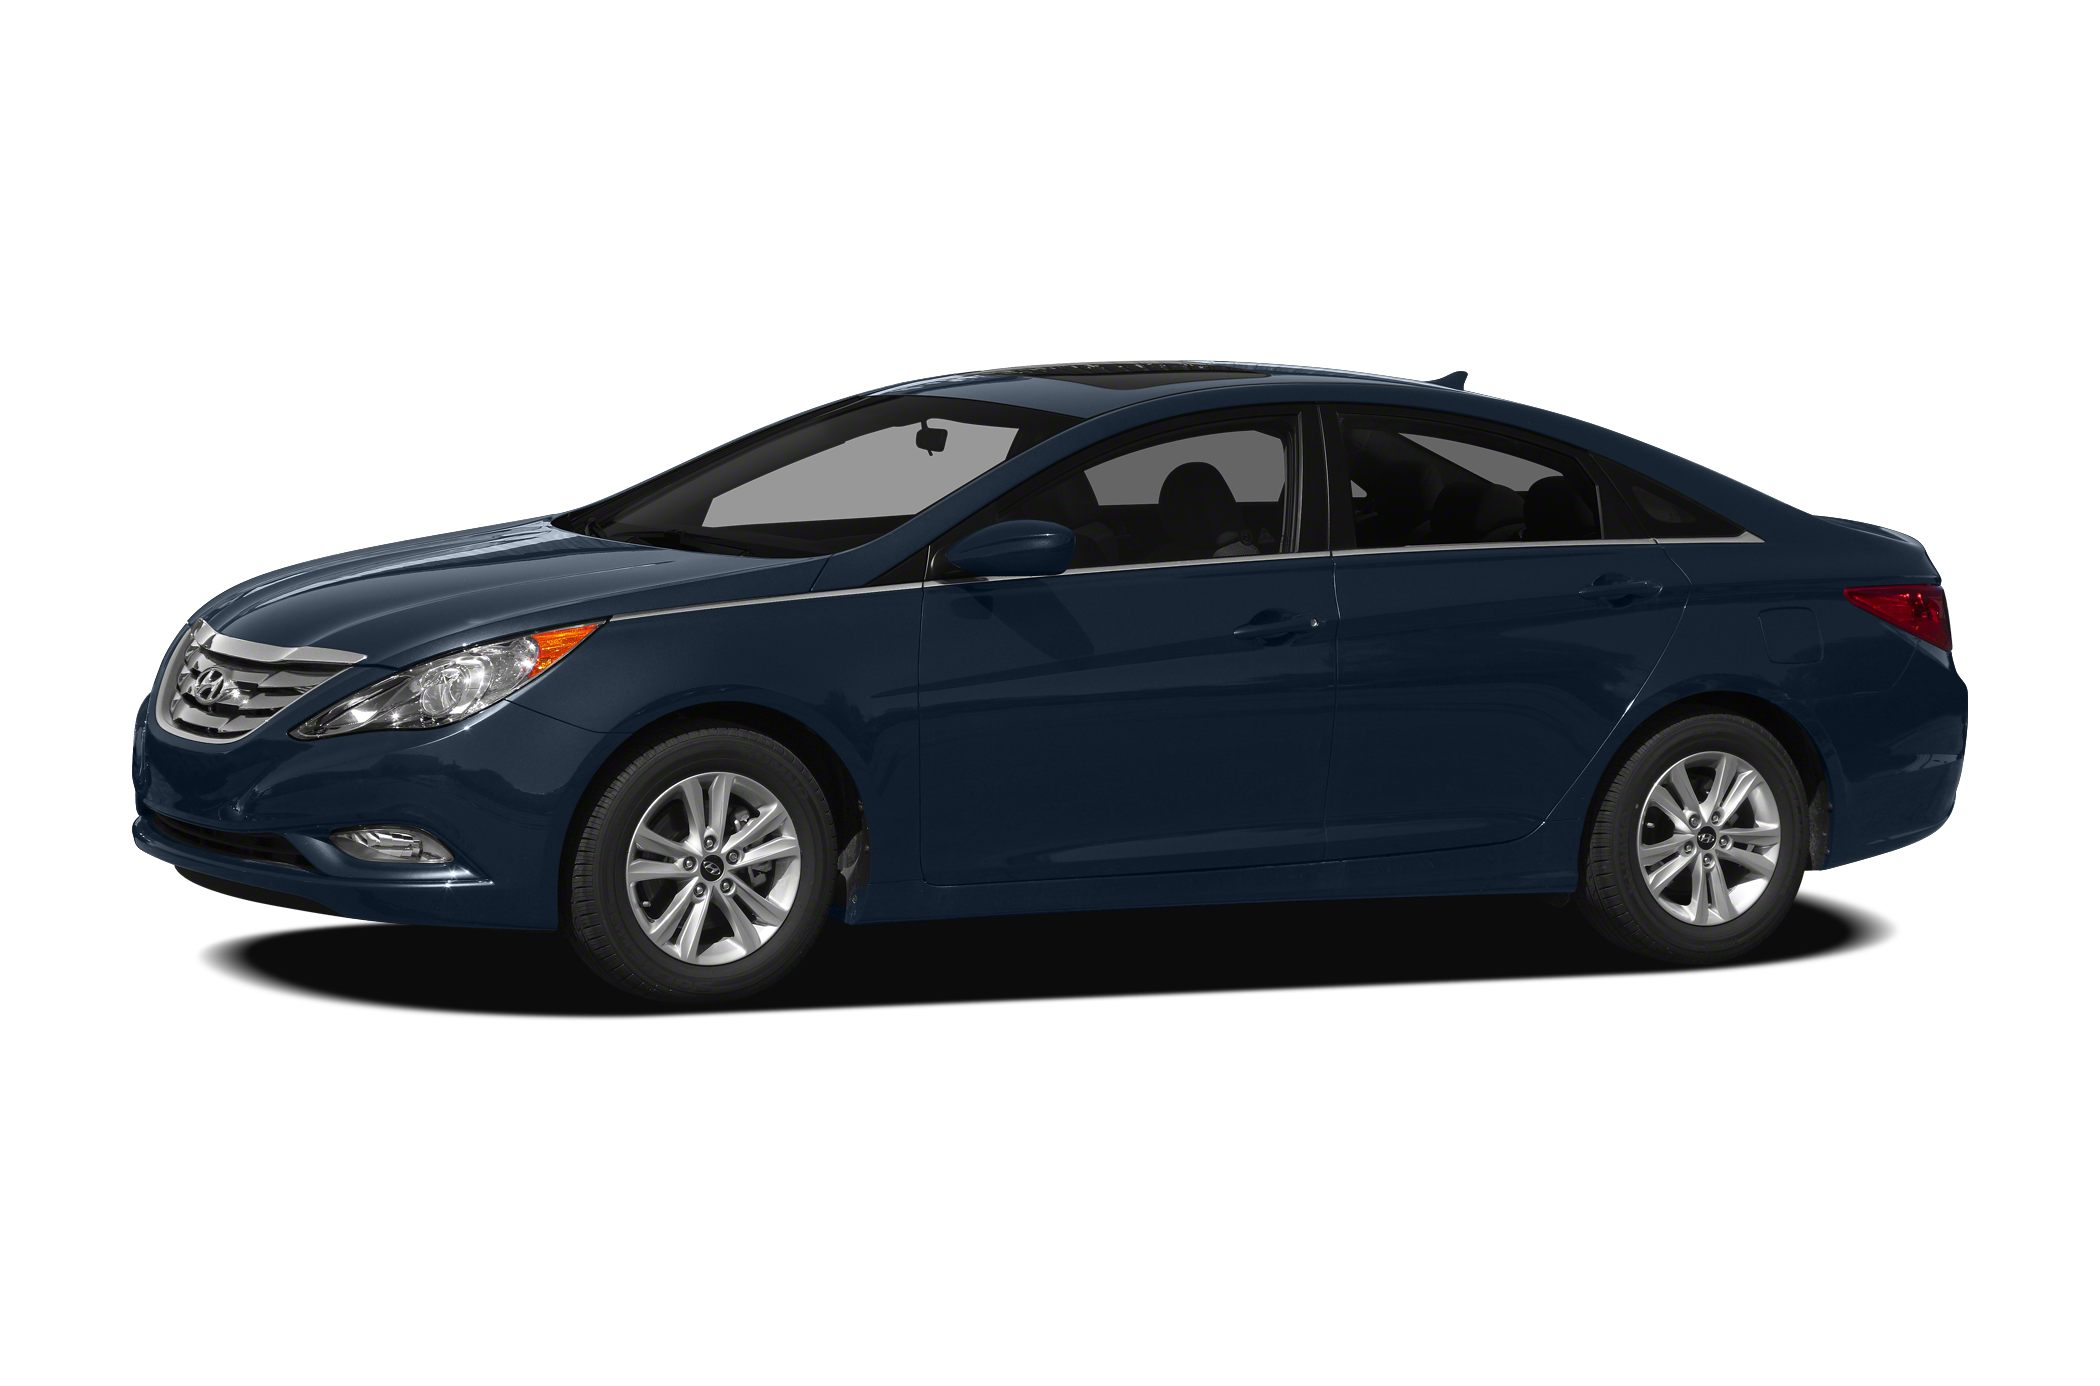 2011 Hyundai Sonata SE Sedan for sale in Leesburg for $10,995 with 63,541 miles.